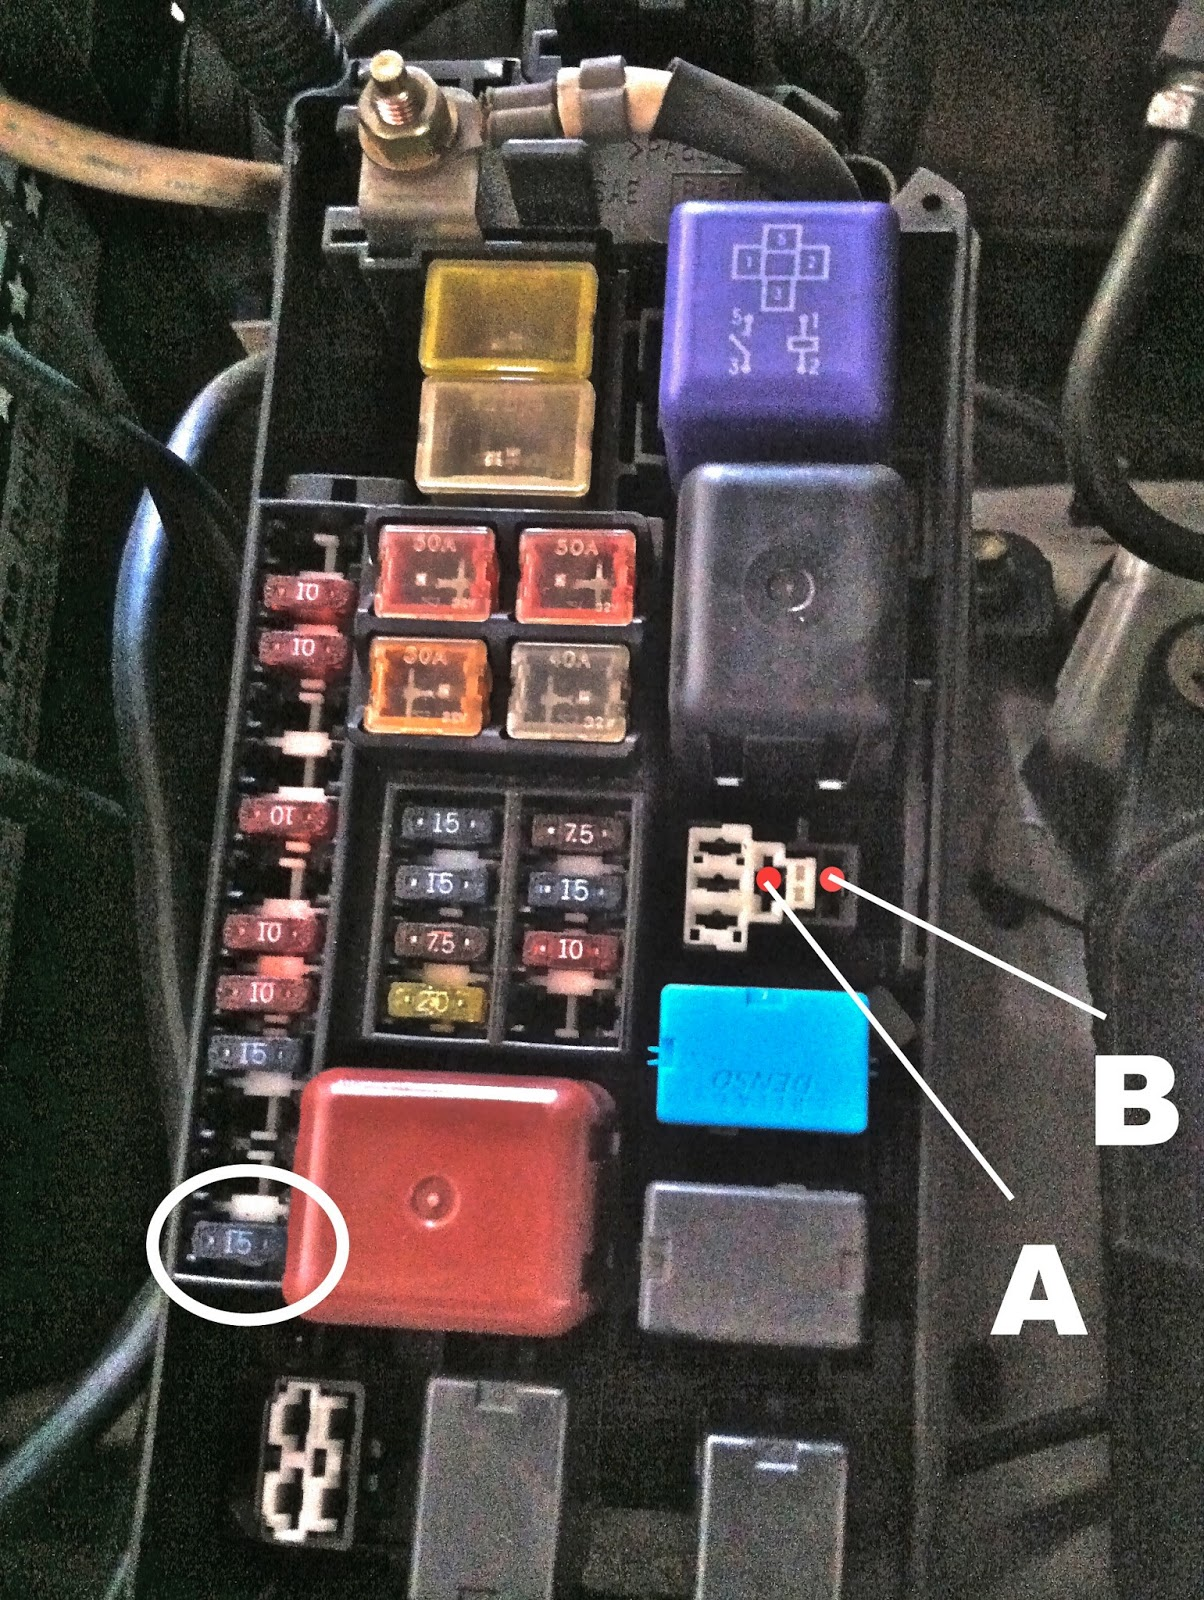 2000 f650 fuse box wiring library2000 ford f650 fuse box diagram also ford mustang wiring diagram [ 1204 x 1600 Pixel ]